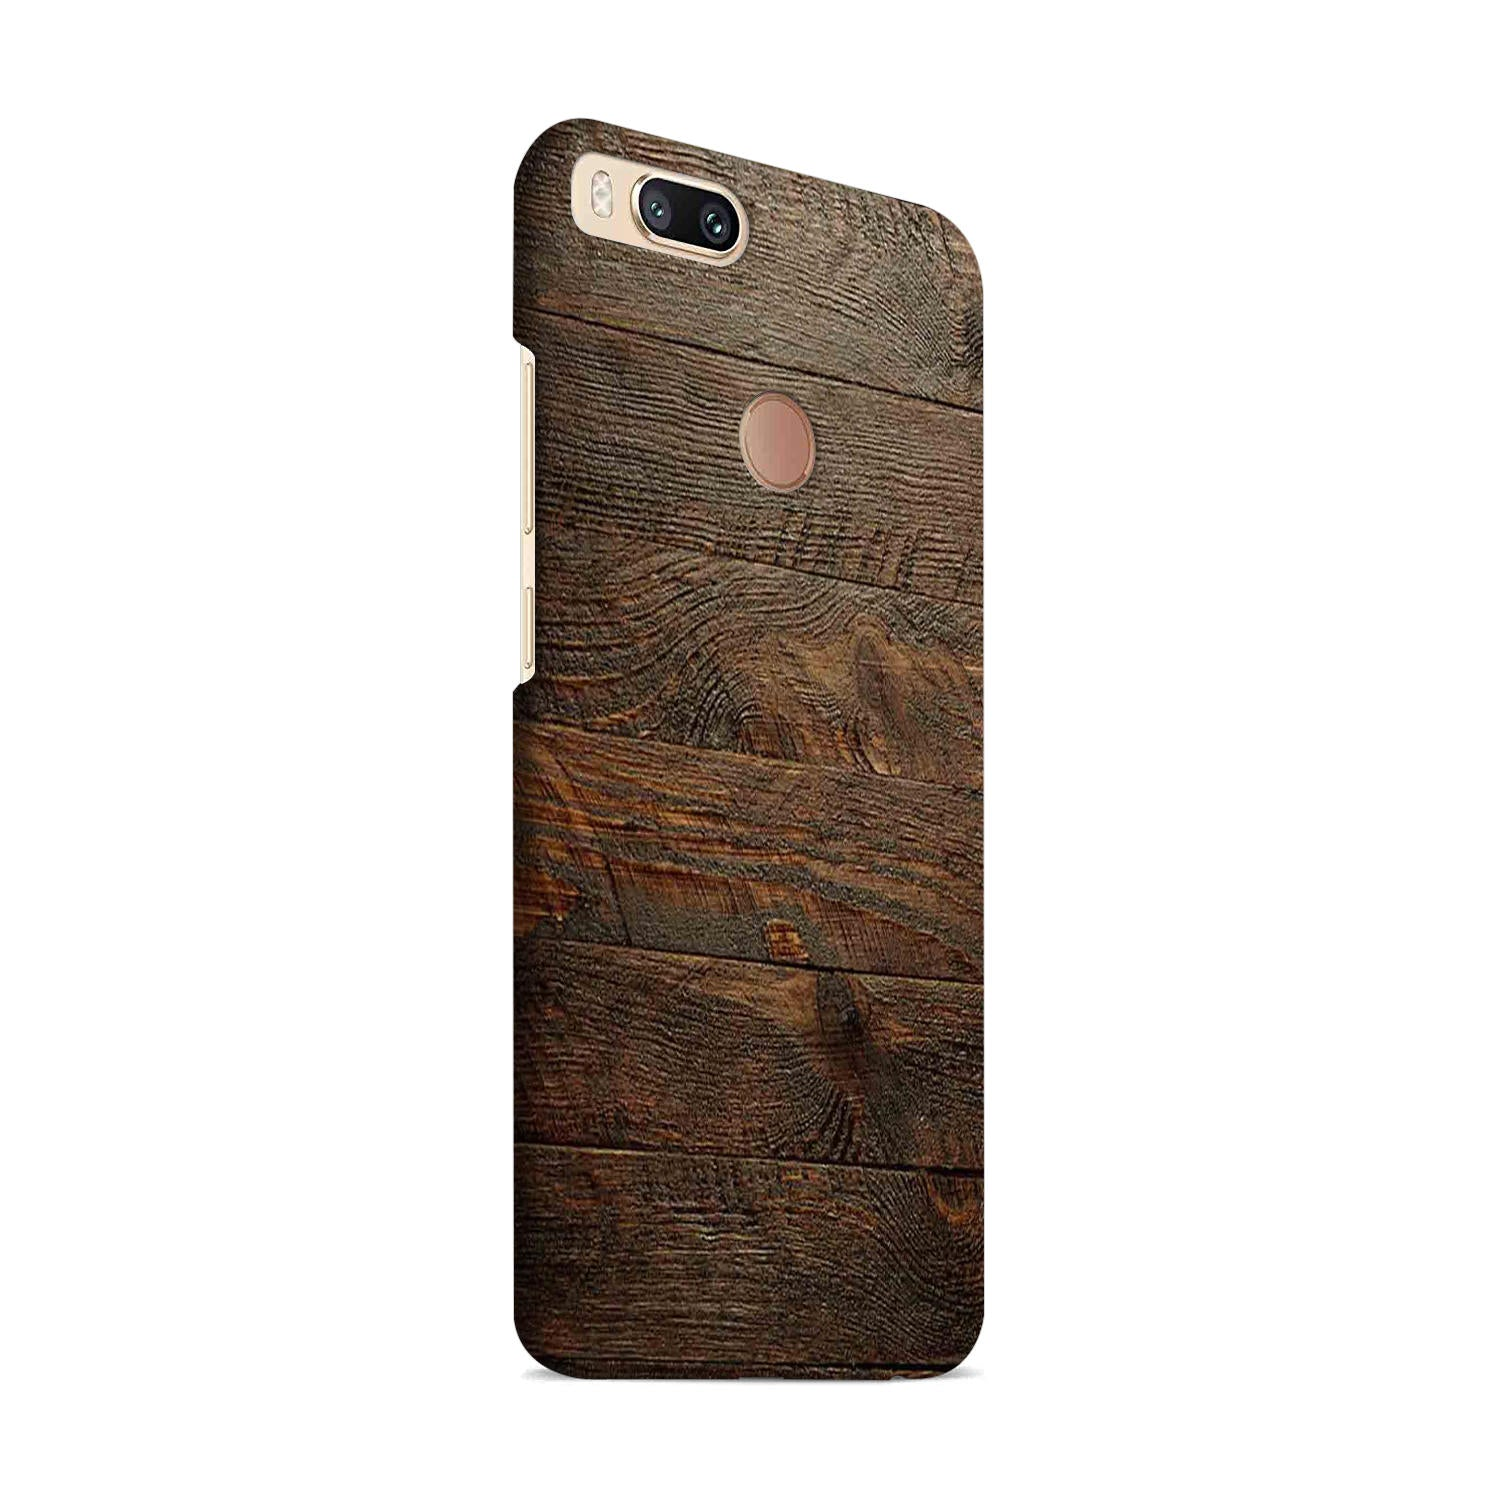 cheap for discount 66f09 4668c Wooden Wall OnePlus 5T Mobile Cover Case